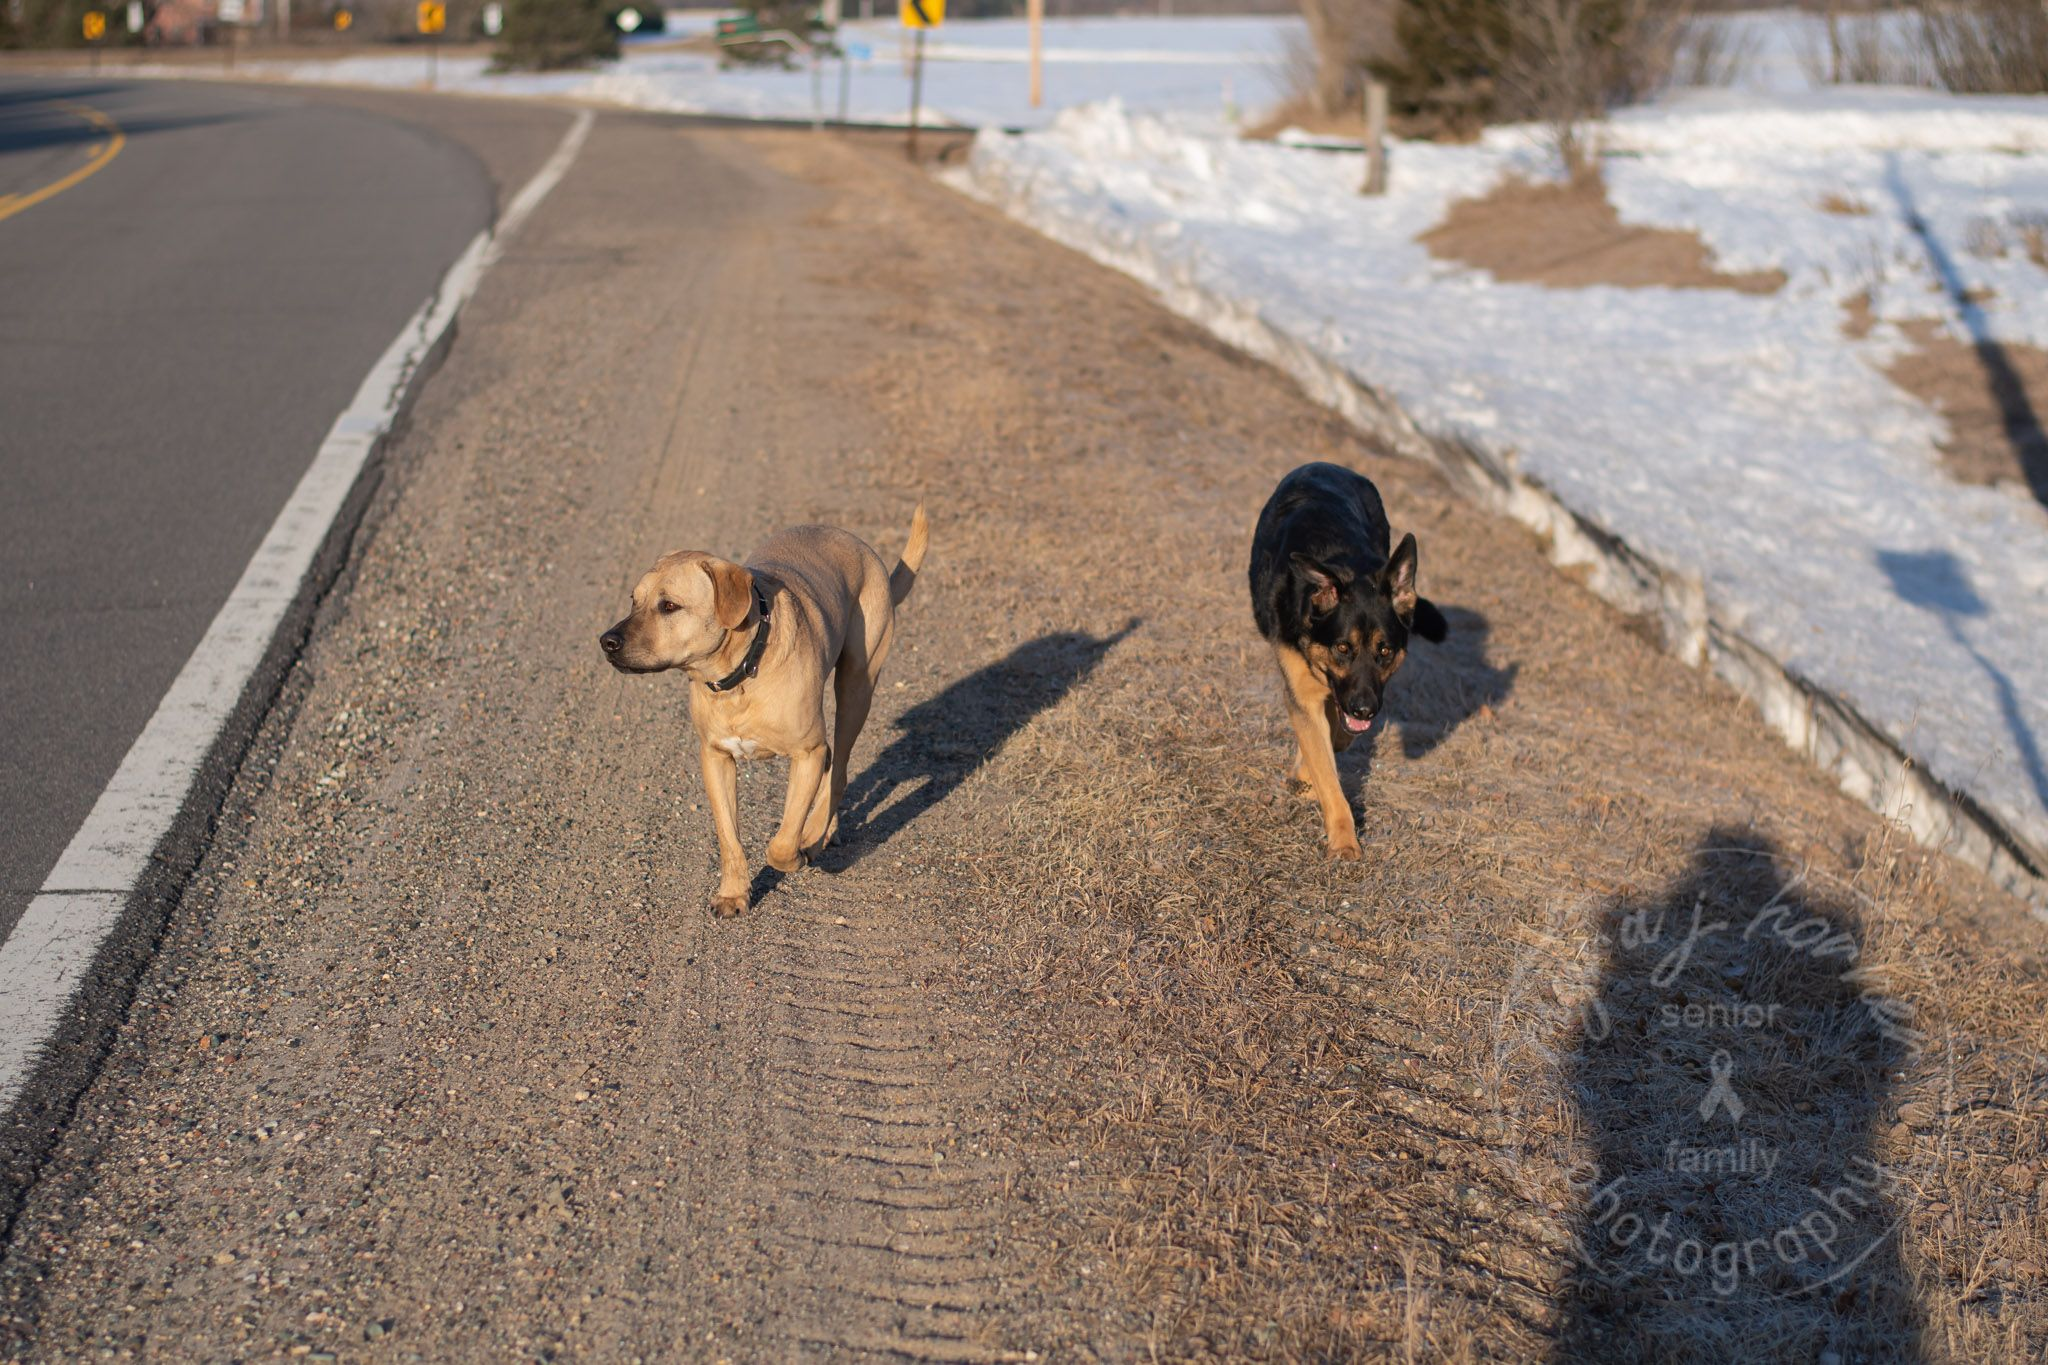 fawn colored Labrador type dog walking down shoulder of road with a black and fawn colored German Shepherd